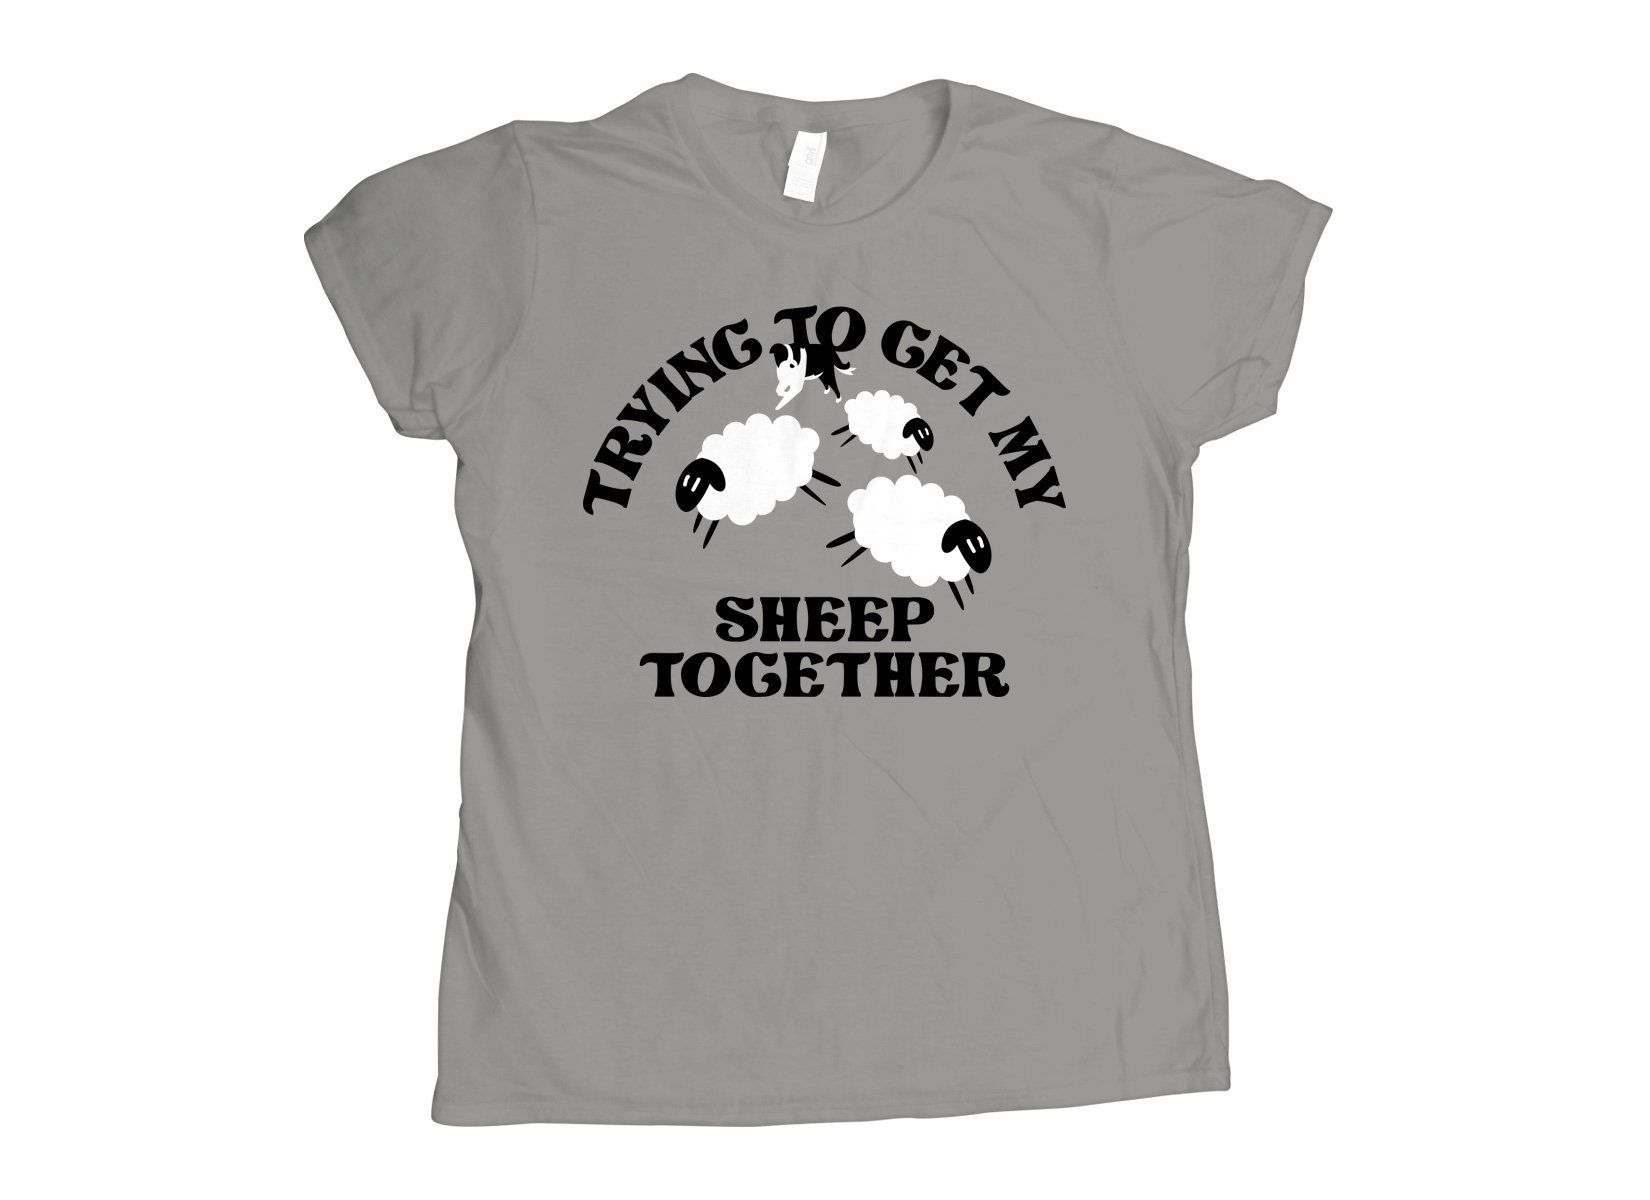 Trying To Get My Sheep Together on Womens T-Shirt